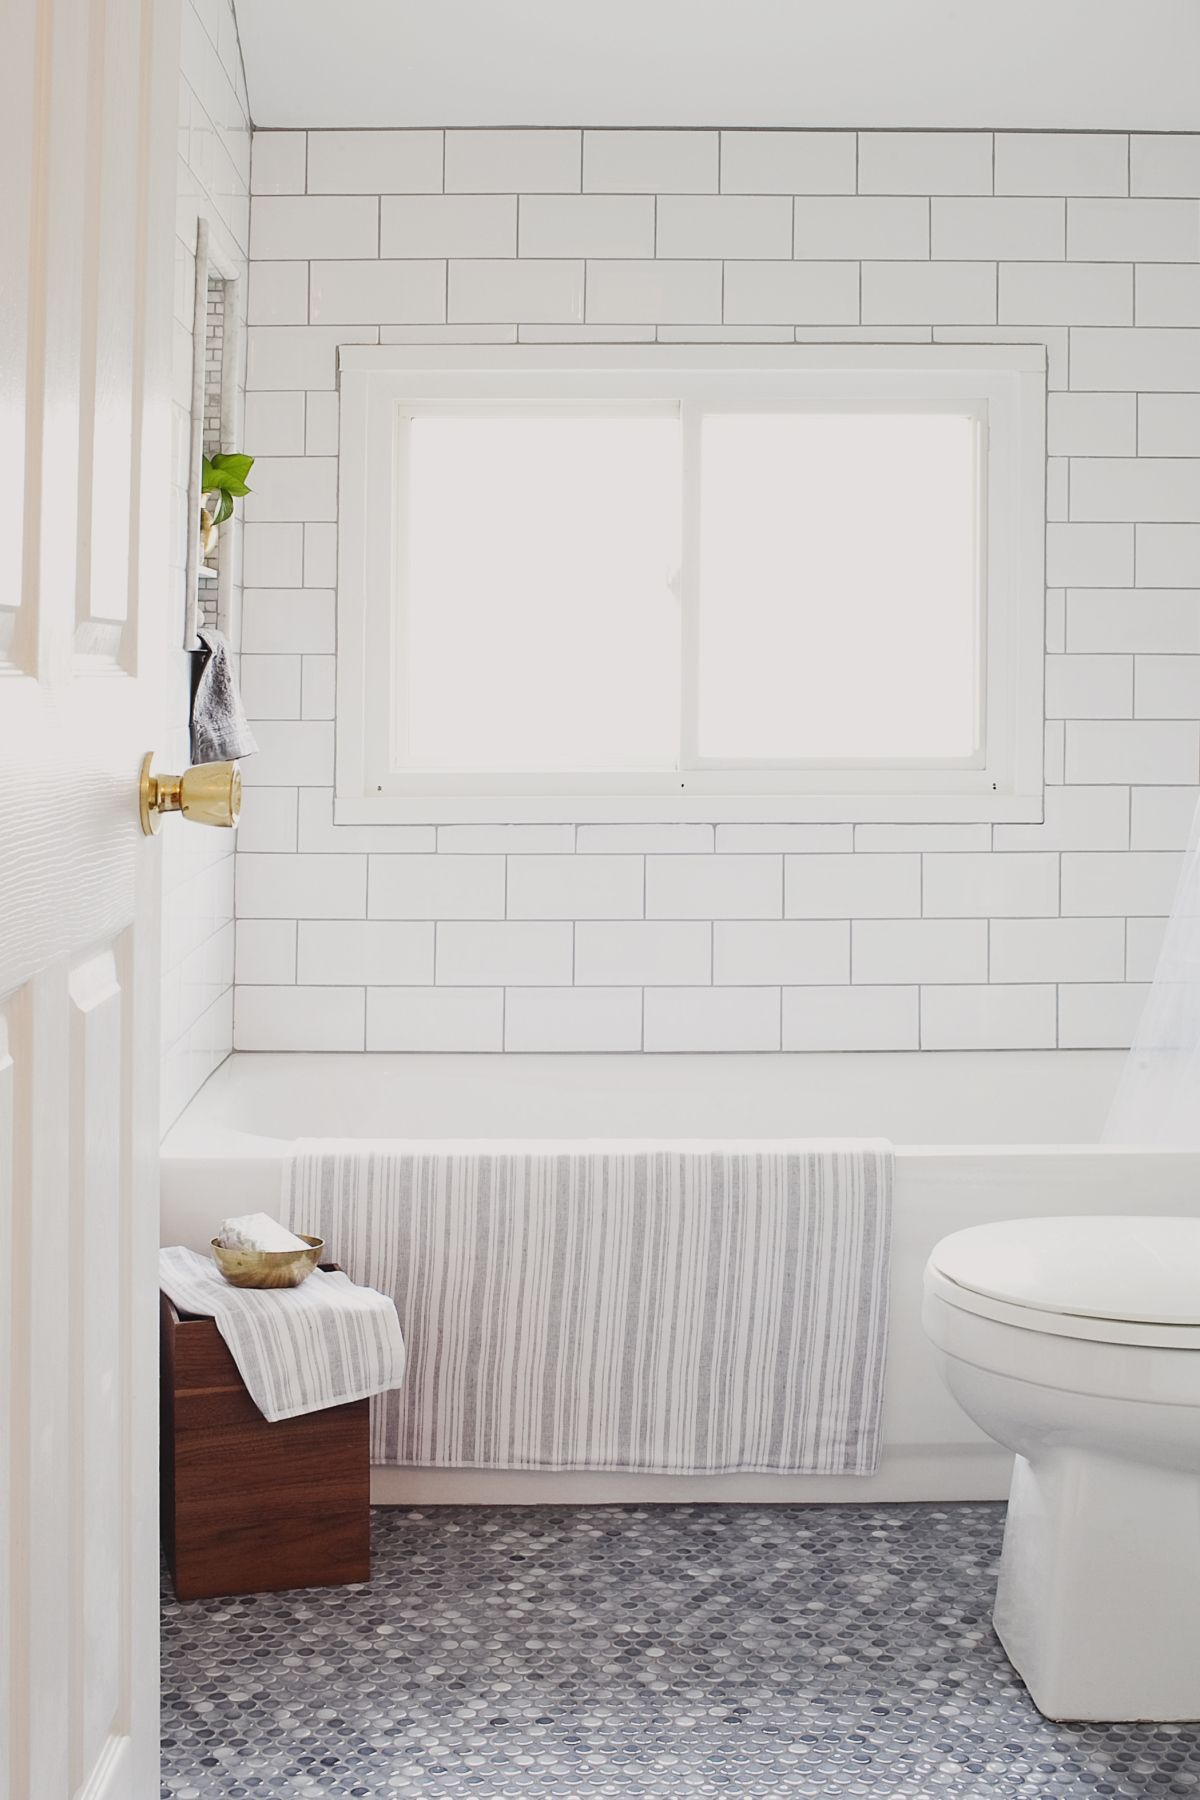 My home subway tiles bath remodel and bathroom laundry budgeting white 4x8 subway tiles dailygadgetfo Gallery